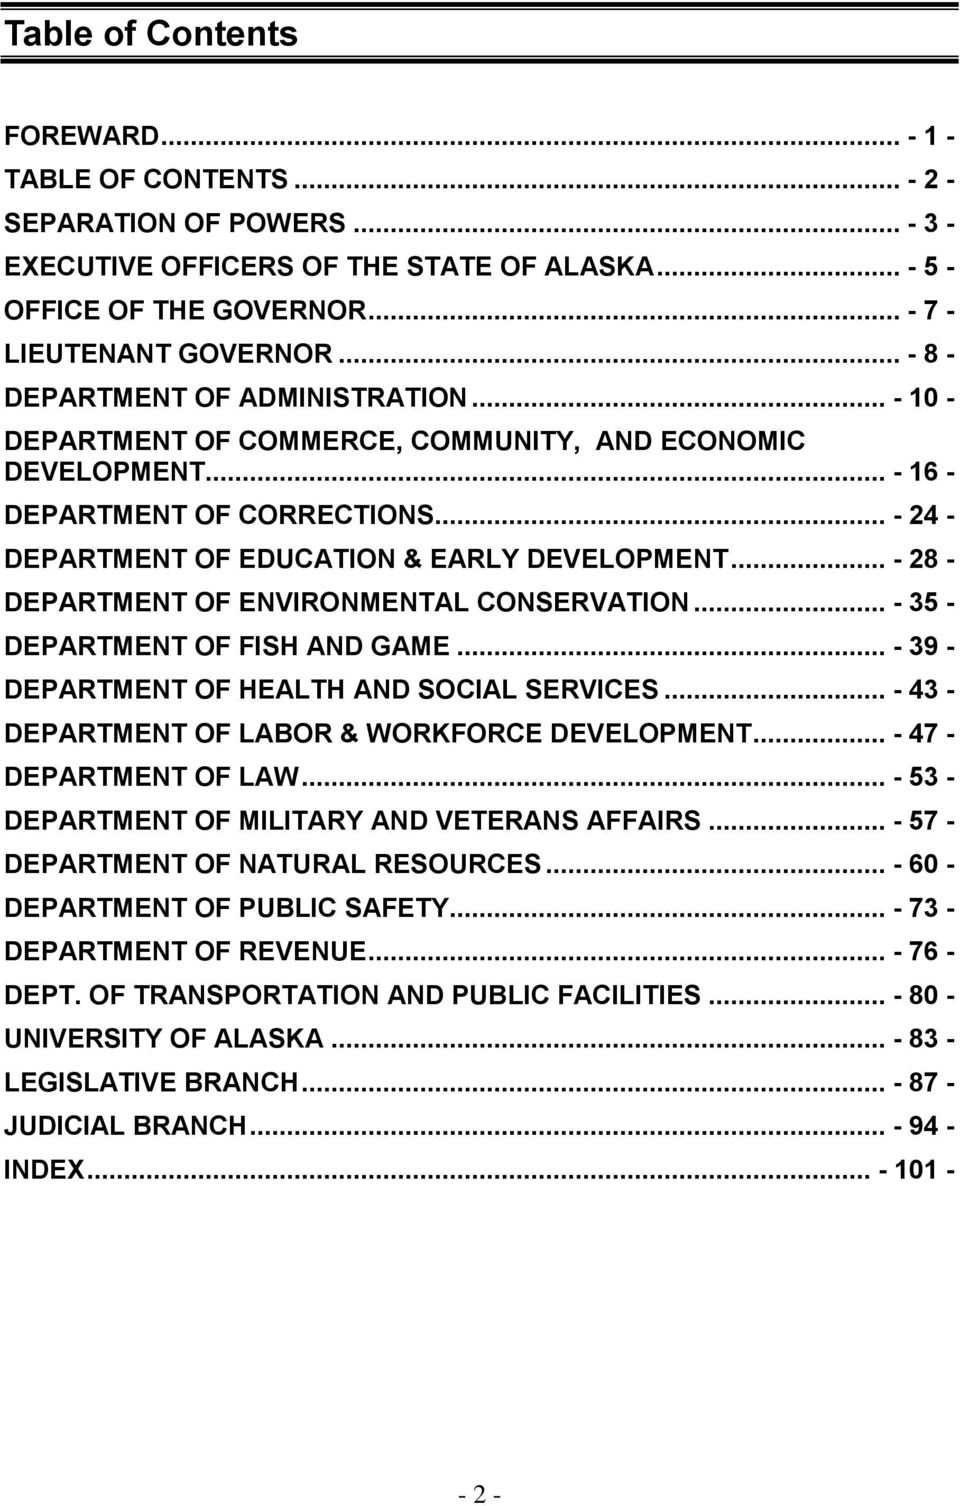 .. - 28 - DEPARTMENT OF ENVIRONMENTAL CONSERVATION... - 35 - DEPARTMENT OF FISH AND GAME... - 39 - DEPARTMENT OF HEALTH AND SOCIAL SERVICES... - 43 - DEPARTMENT OF LABOR & WORKFORCE DEVELOPMENT.